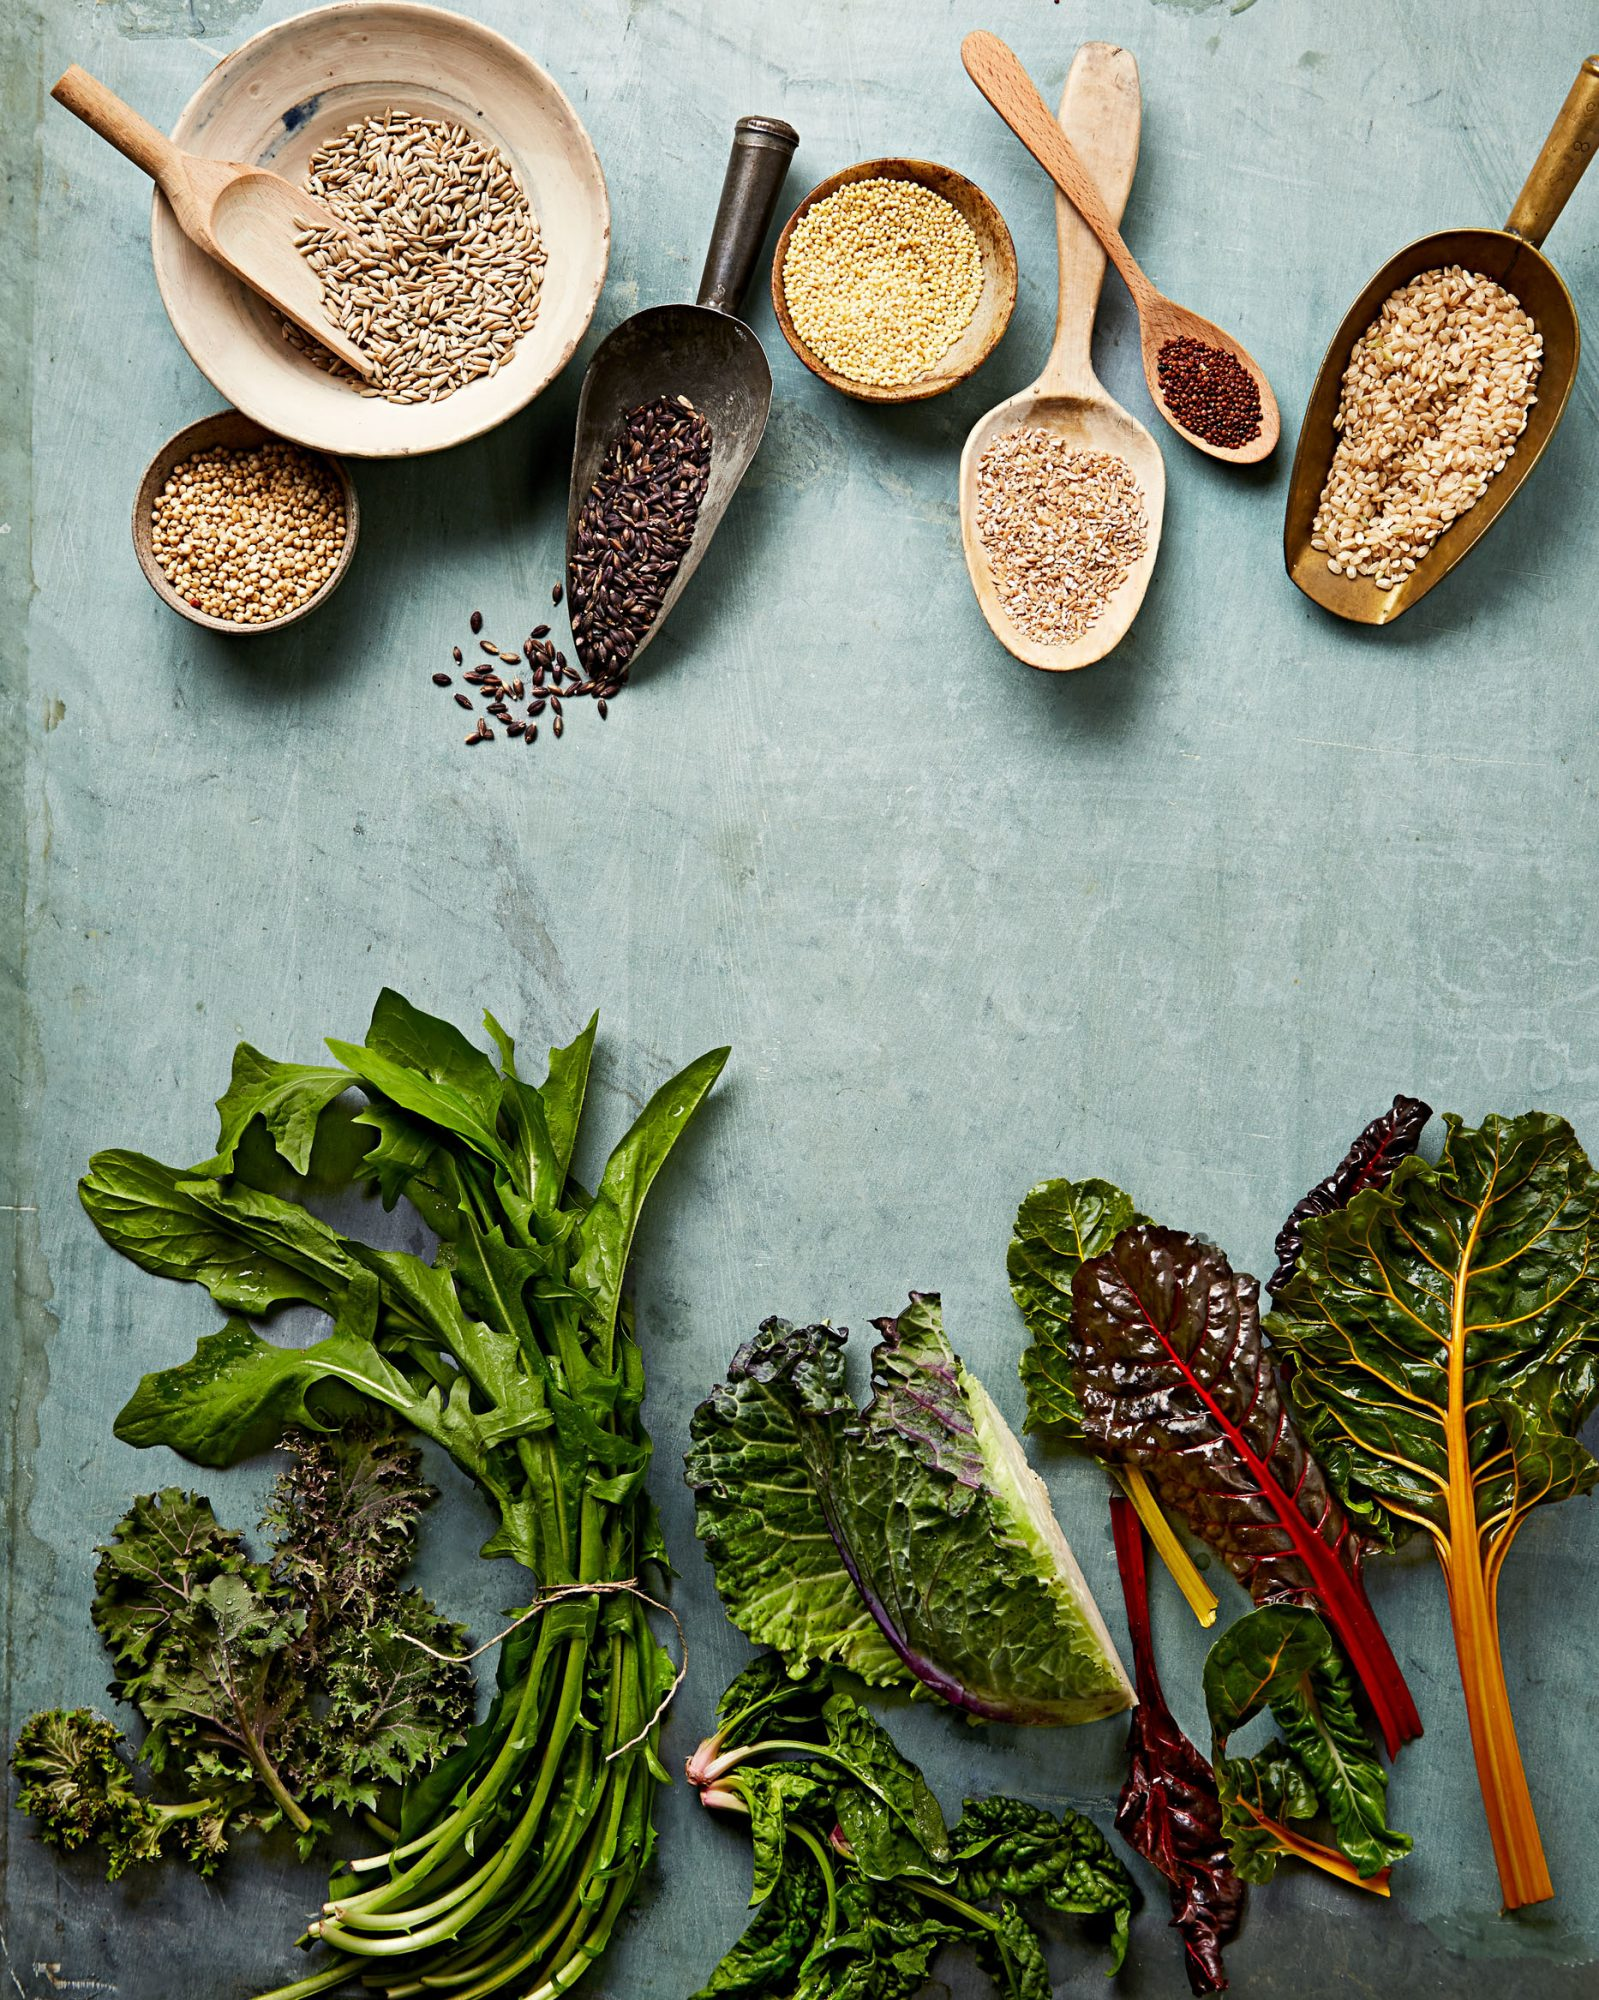 Whole grains including millet and quinoa, in scoops and raw leafy green vegetables, including spinach and dandelions, on a blue surface.